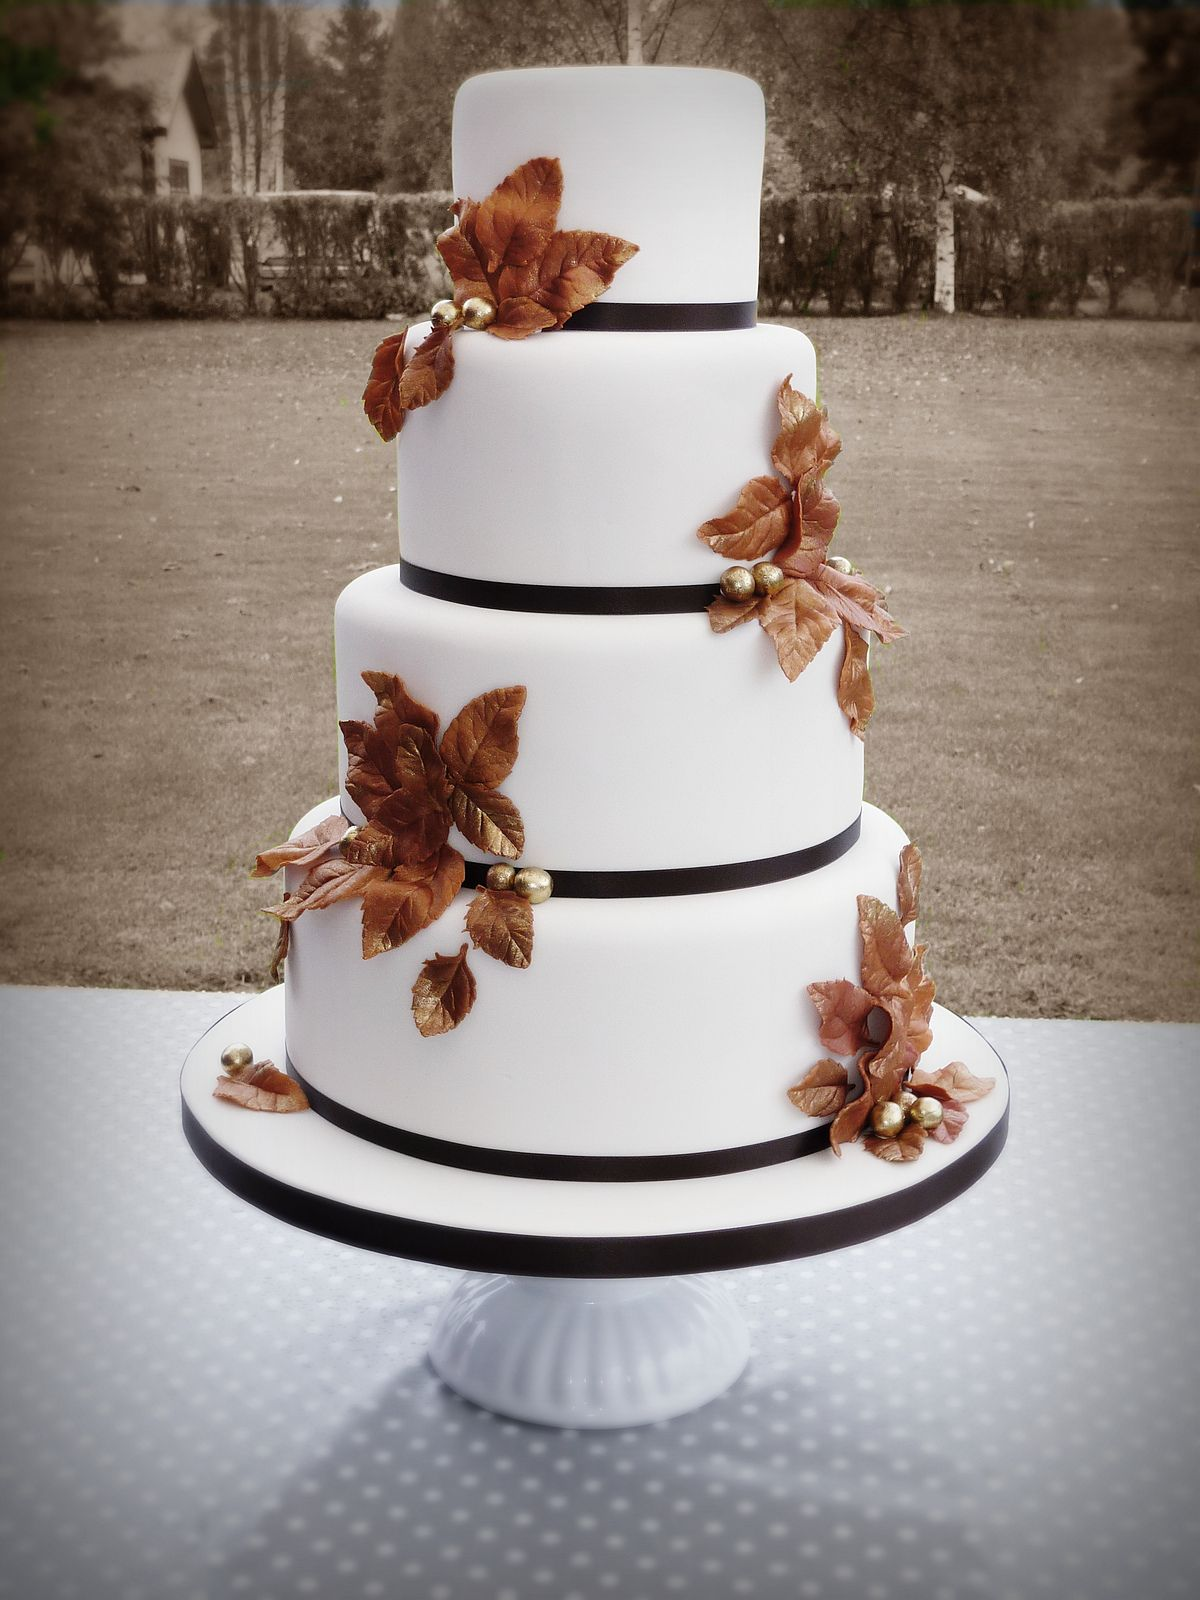 Autumn wedding cake | Autumn weddings, Wedding cake and Cake